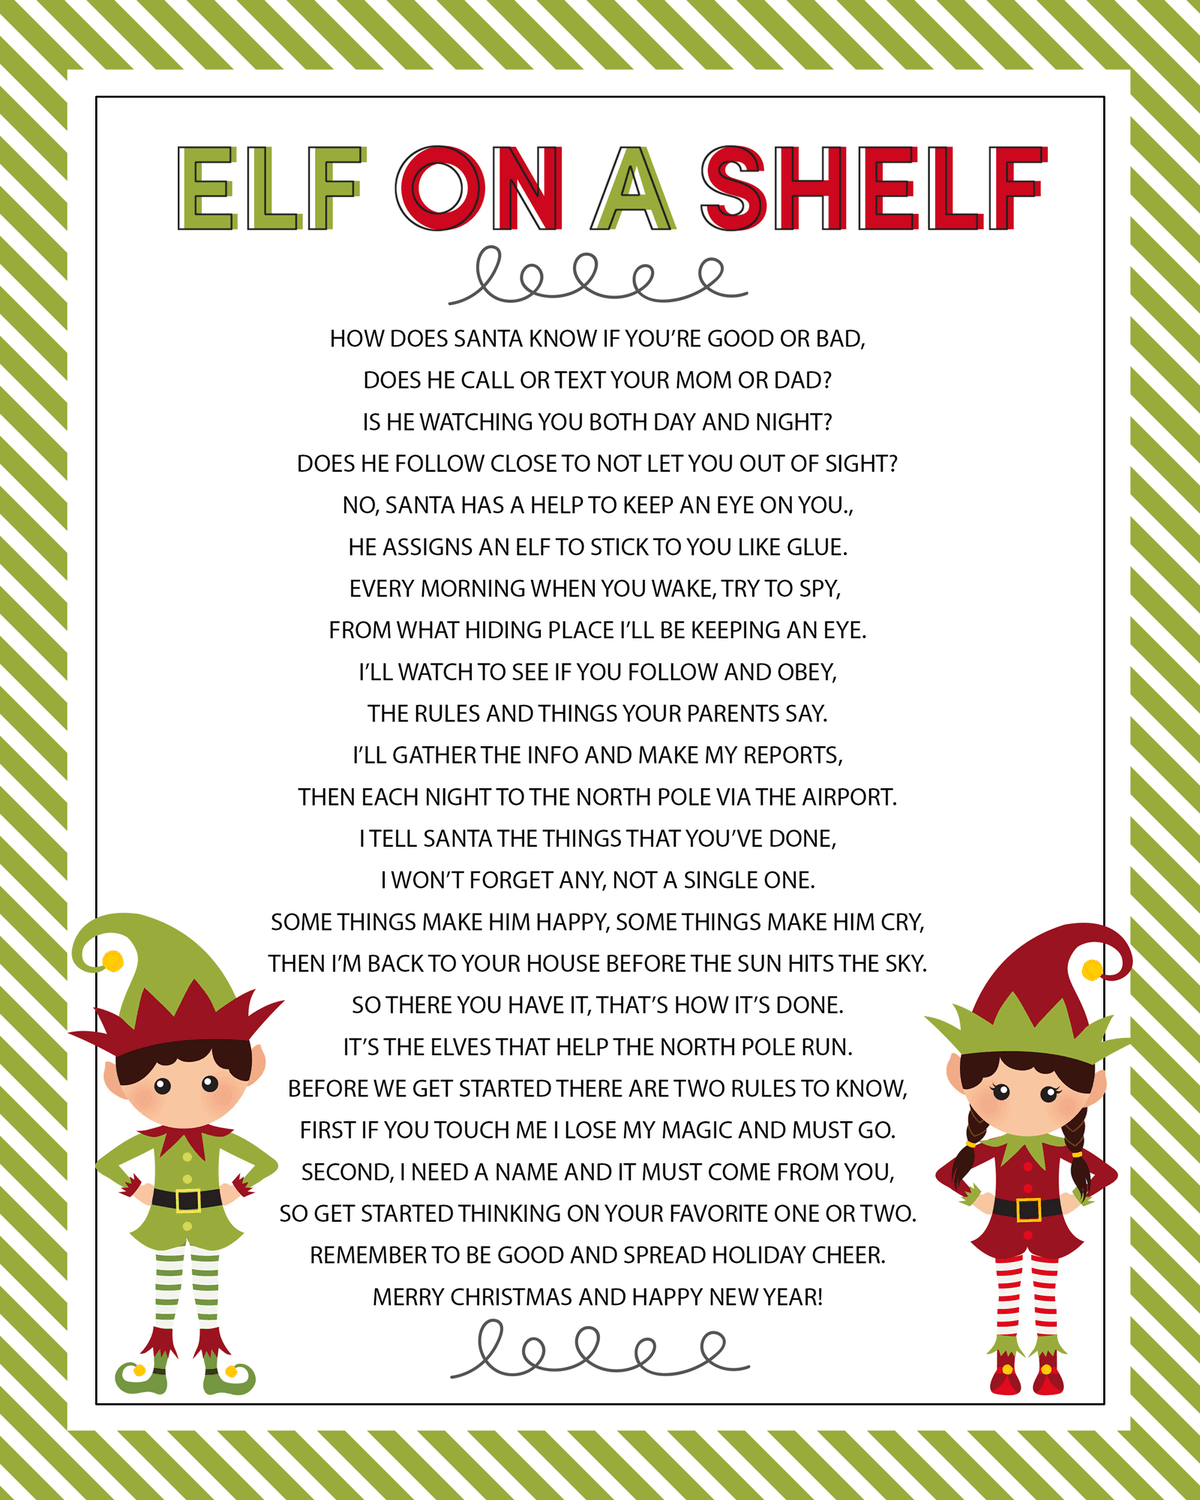 Elf on a Shelf arrival letter poem! So cute and perfect to use when your elf comes!